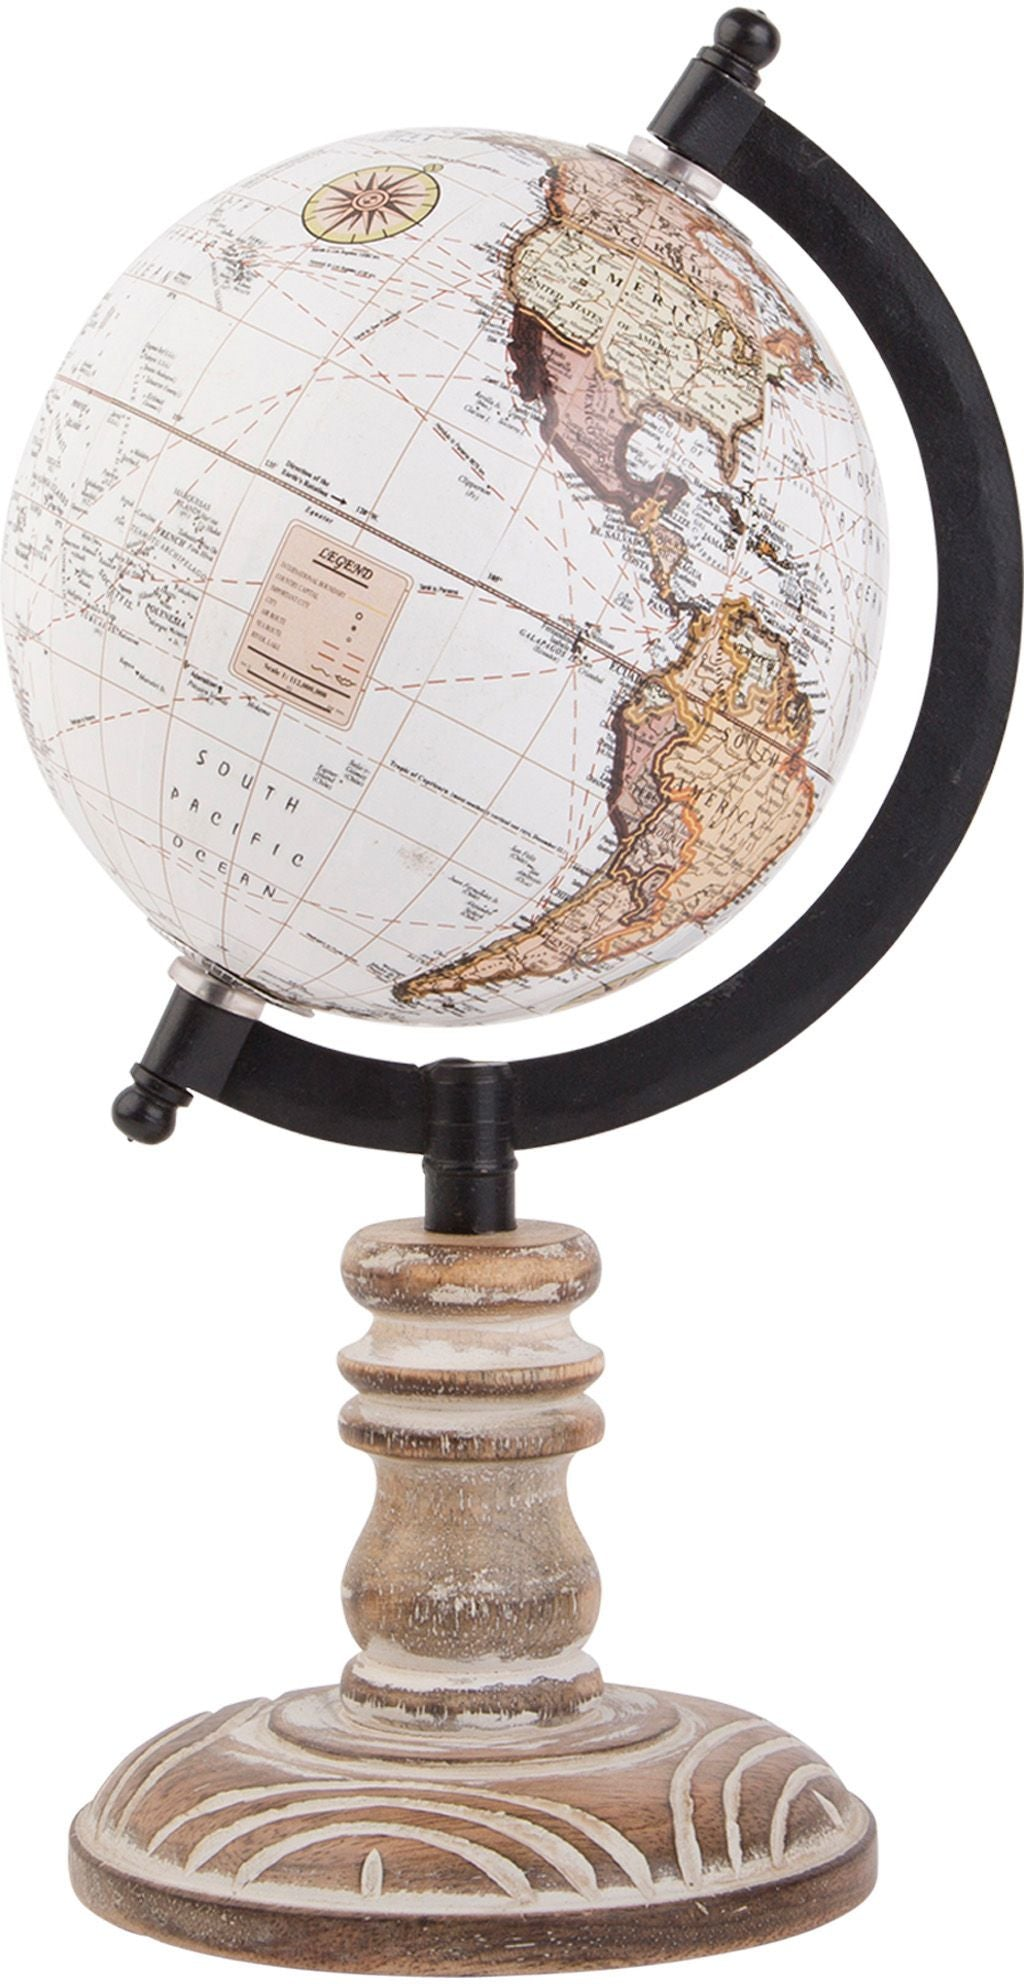 Neutral Color Globe on Wood Base | Cornell's Country Store